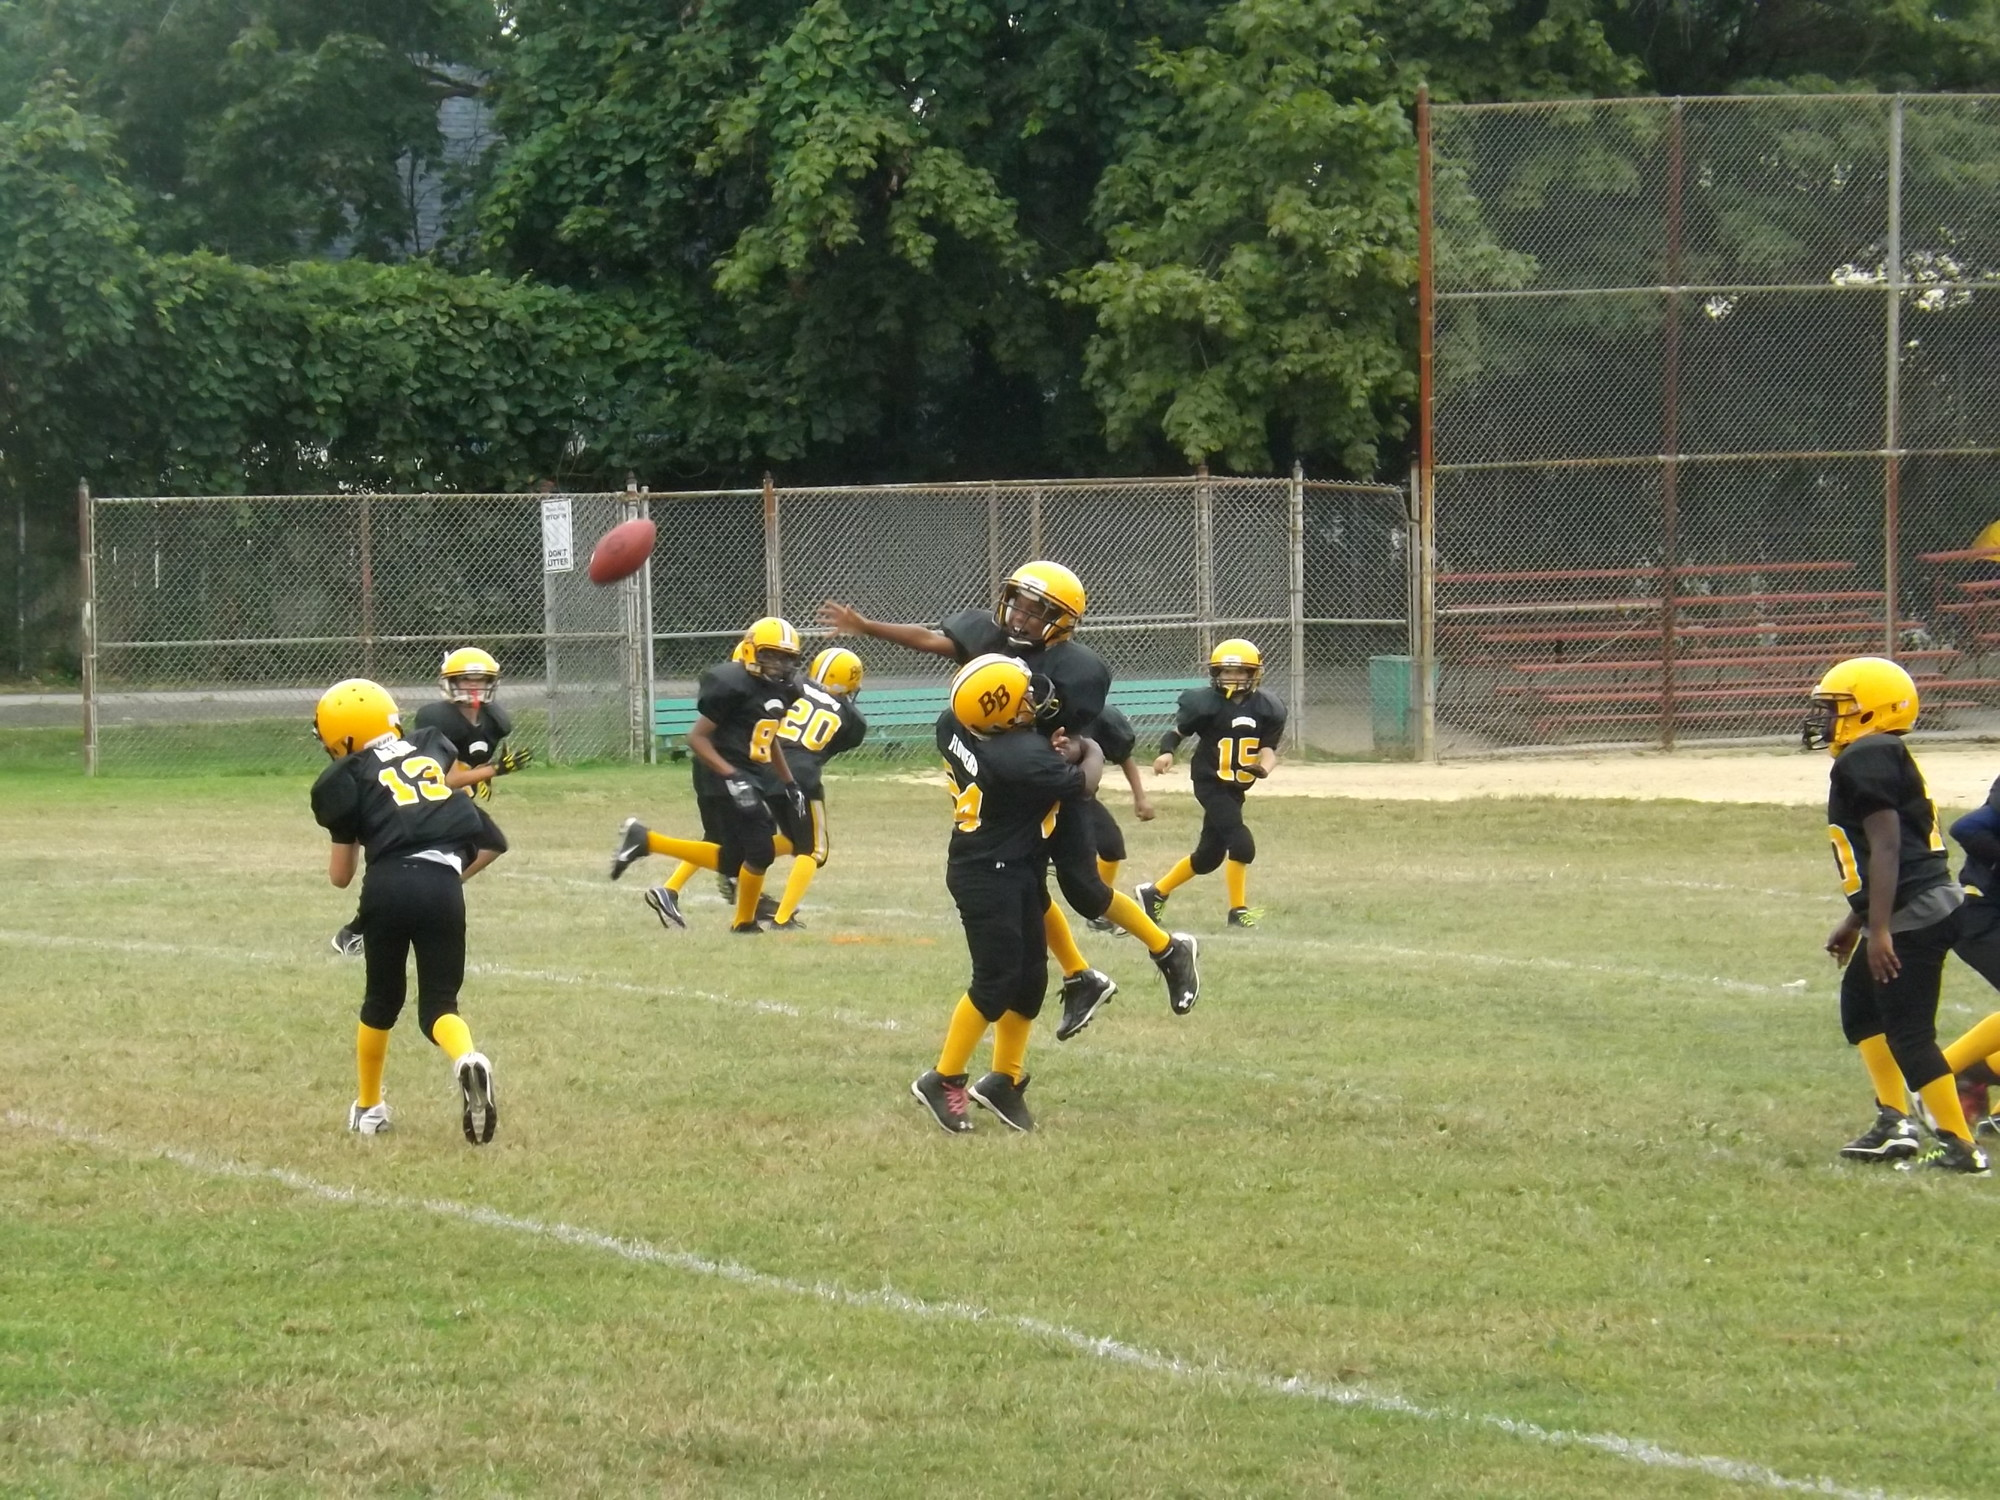 The Baldwin Bombers ran short practices on Sept. 13, the day before their regular season kicked off.